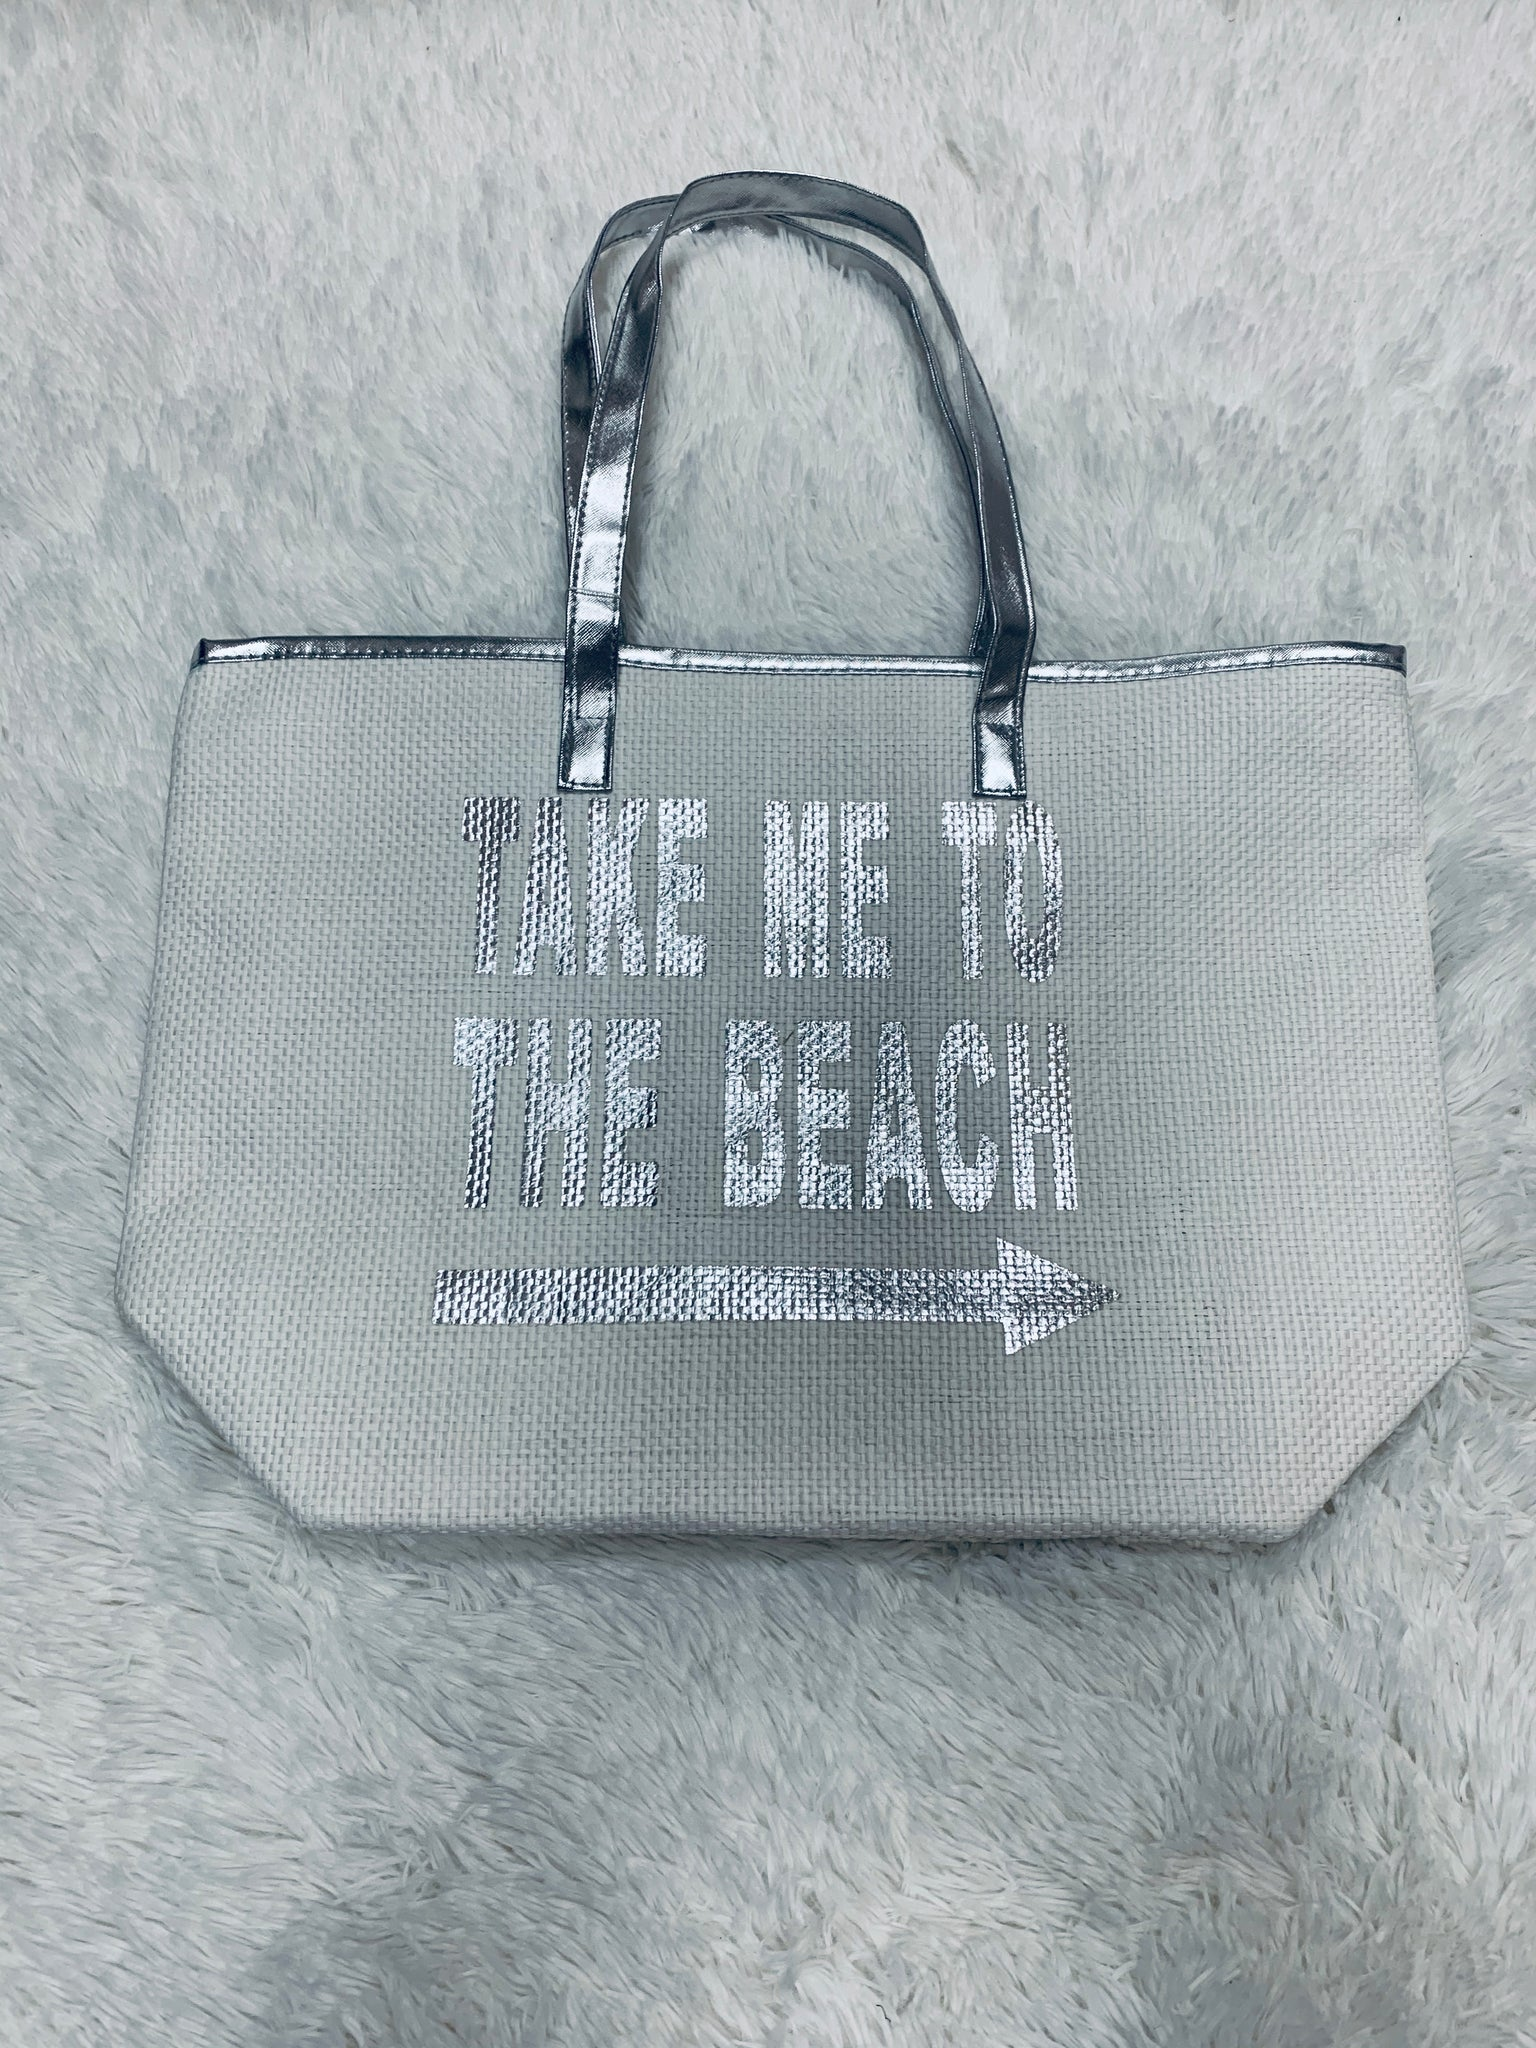 Beach Bag - Take Me to the Beach